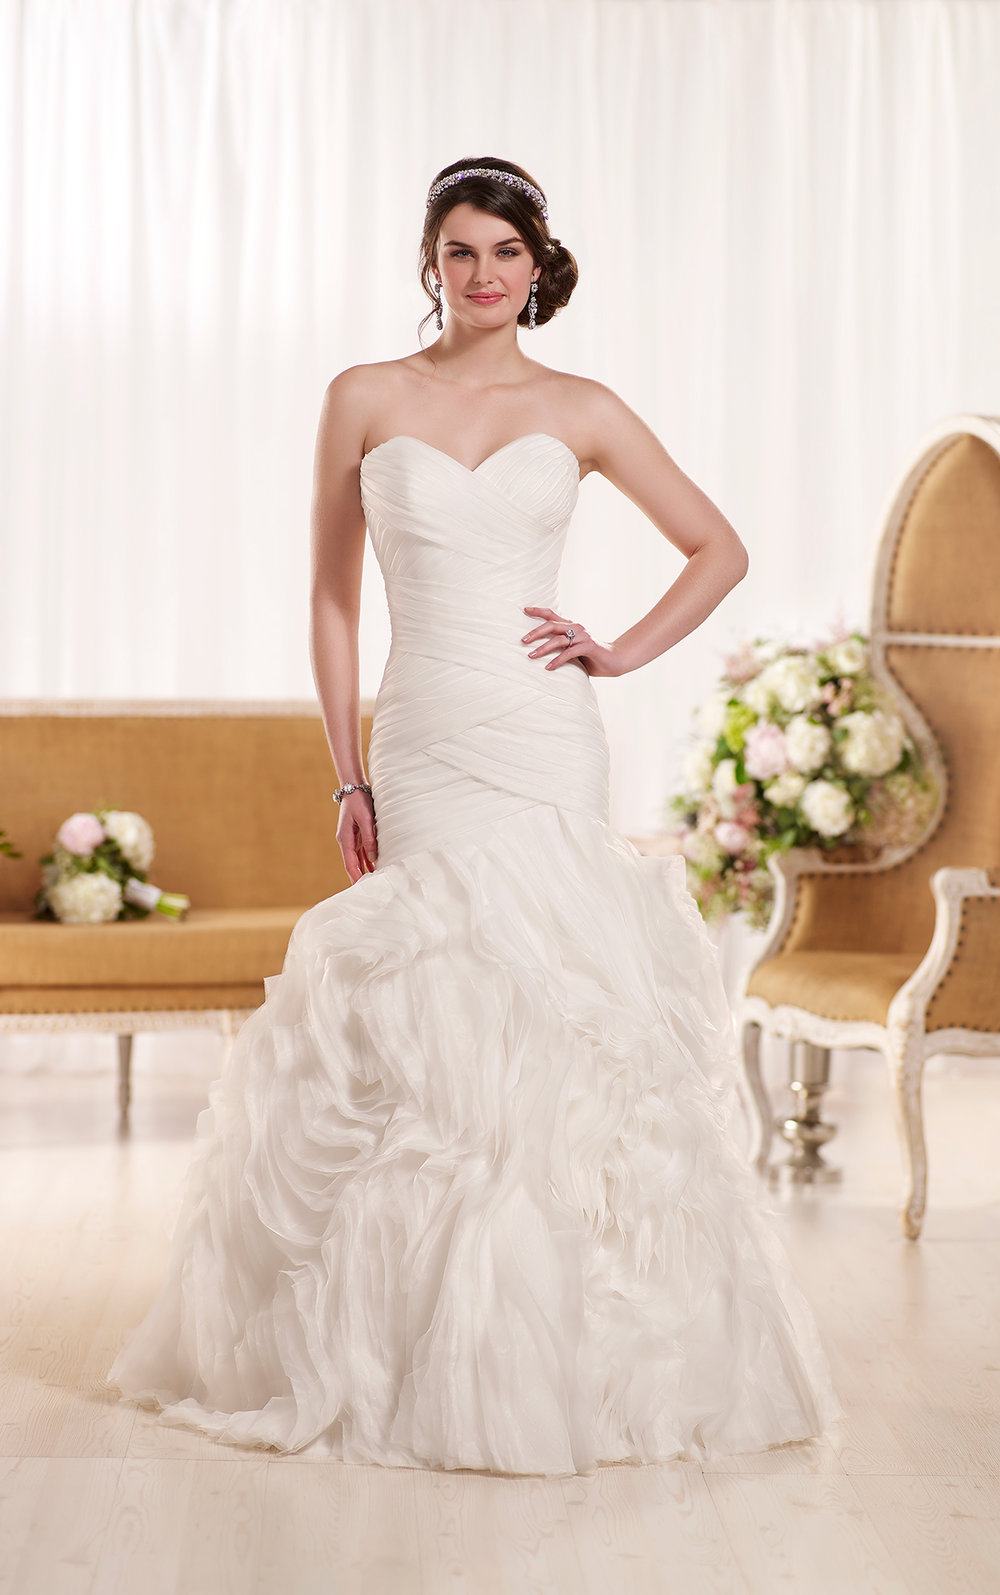 Sweetheart neckline couture wedding dress